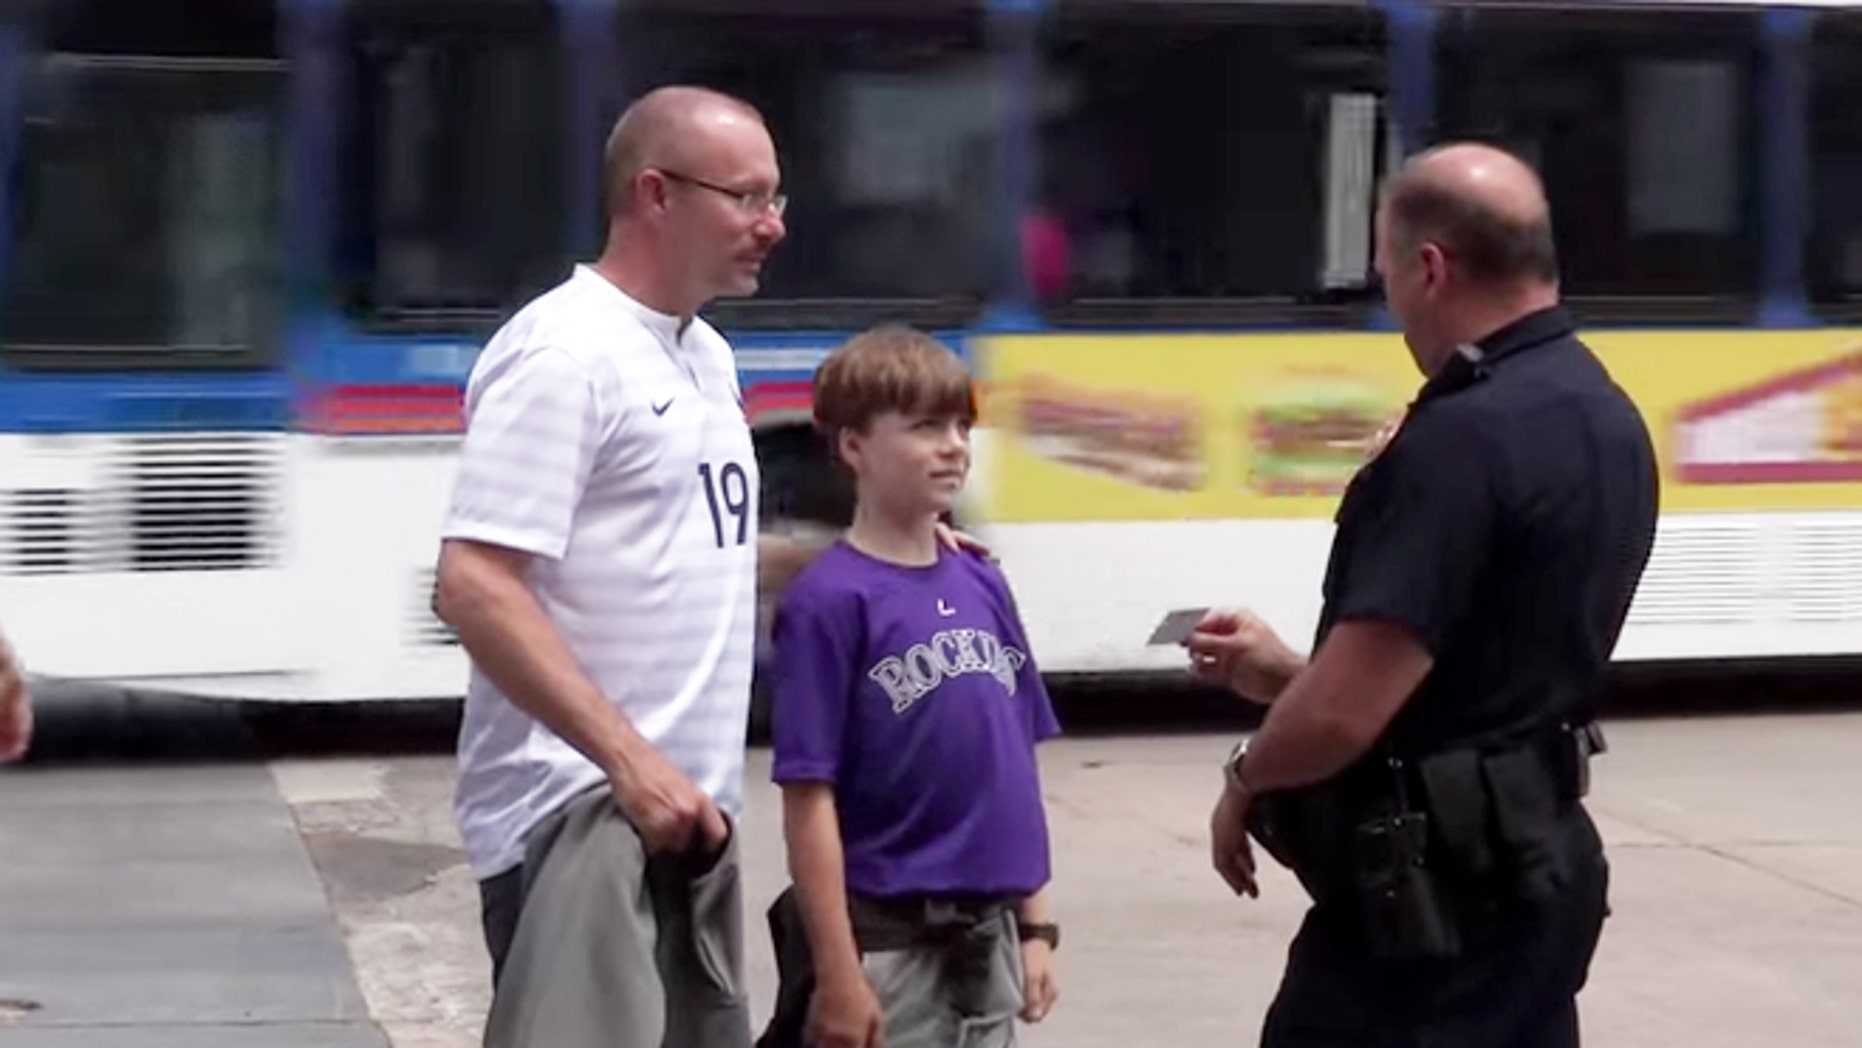 A police officer hands out a pizza card to well behaved duo.